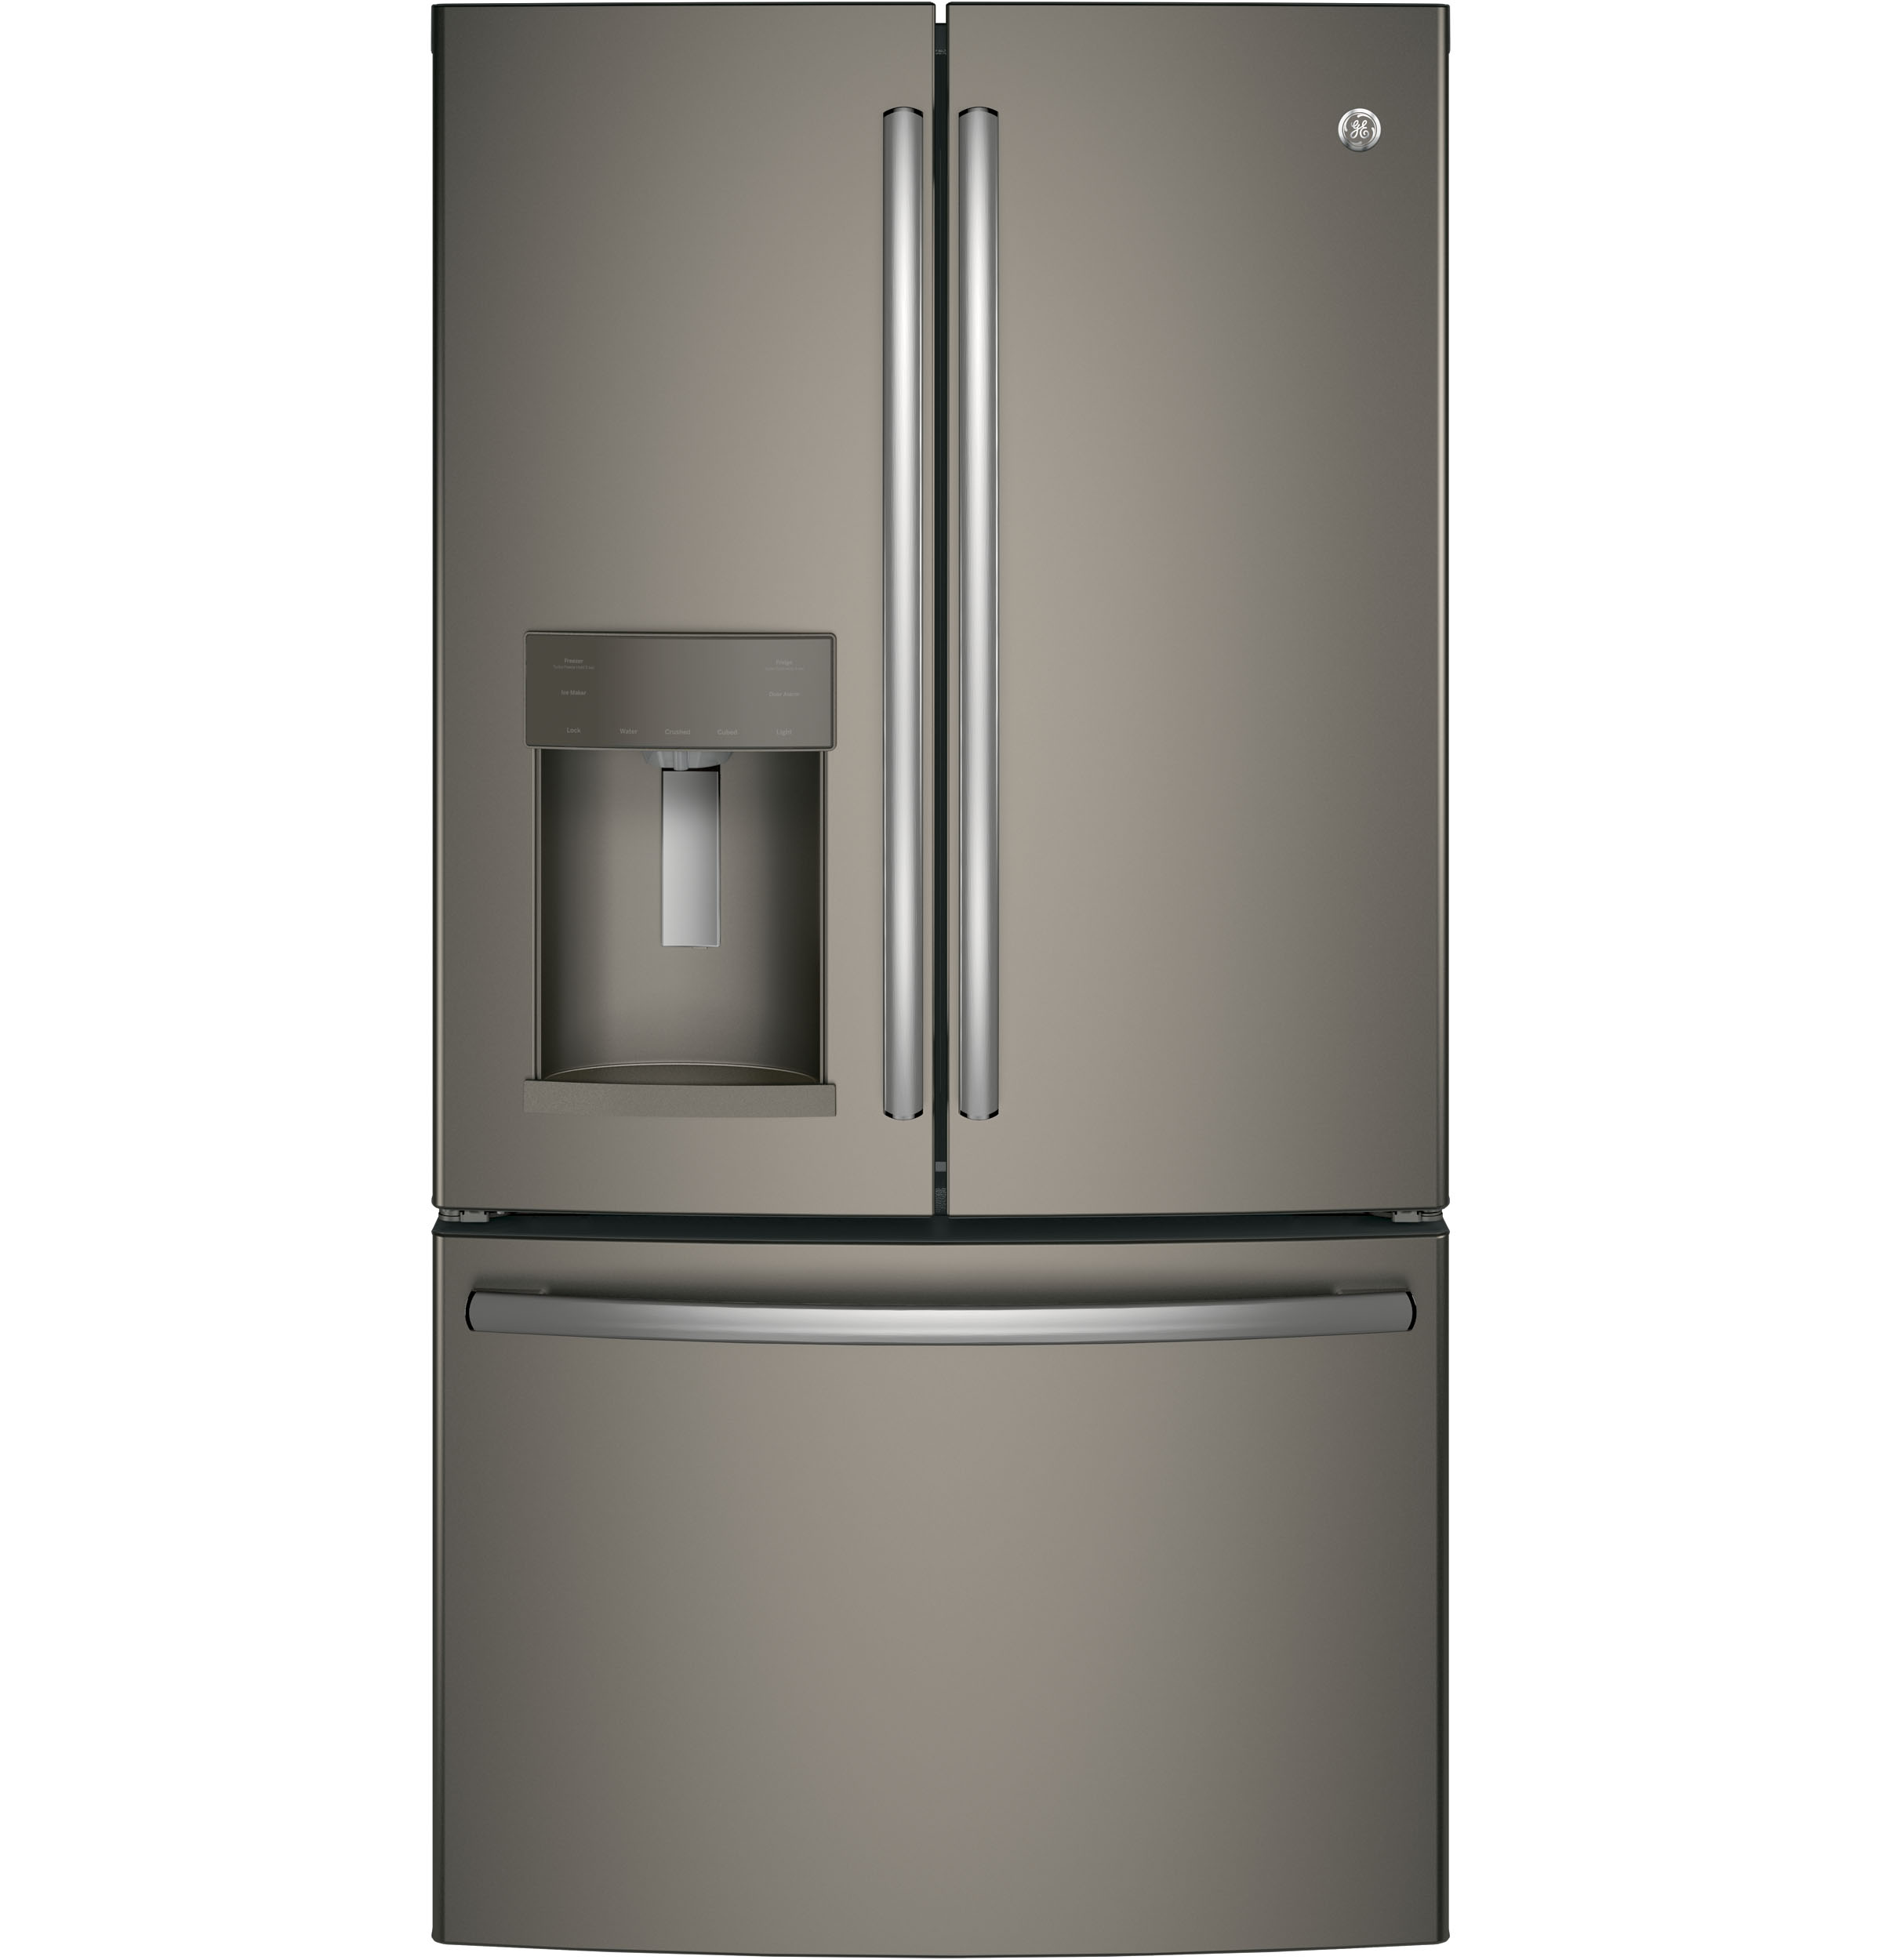 GE GE® ENERGY STAR® 27.7 Cu. Ft. French-Door Refrigerator